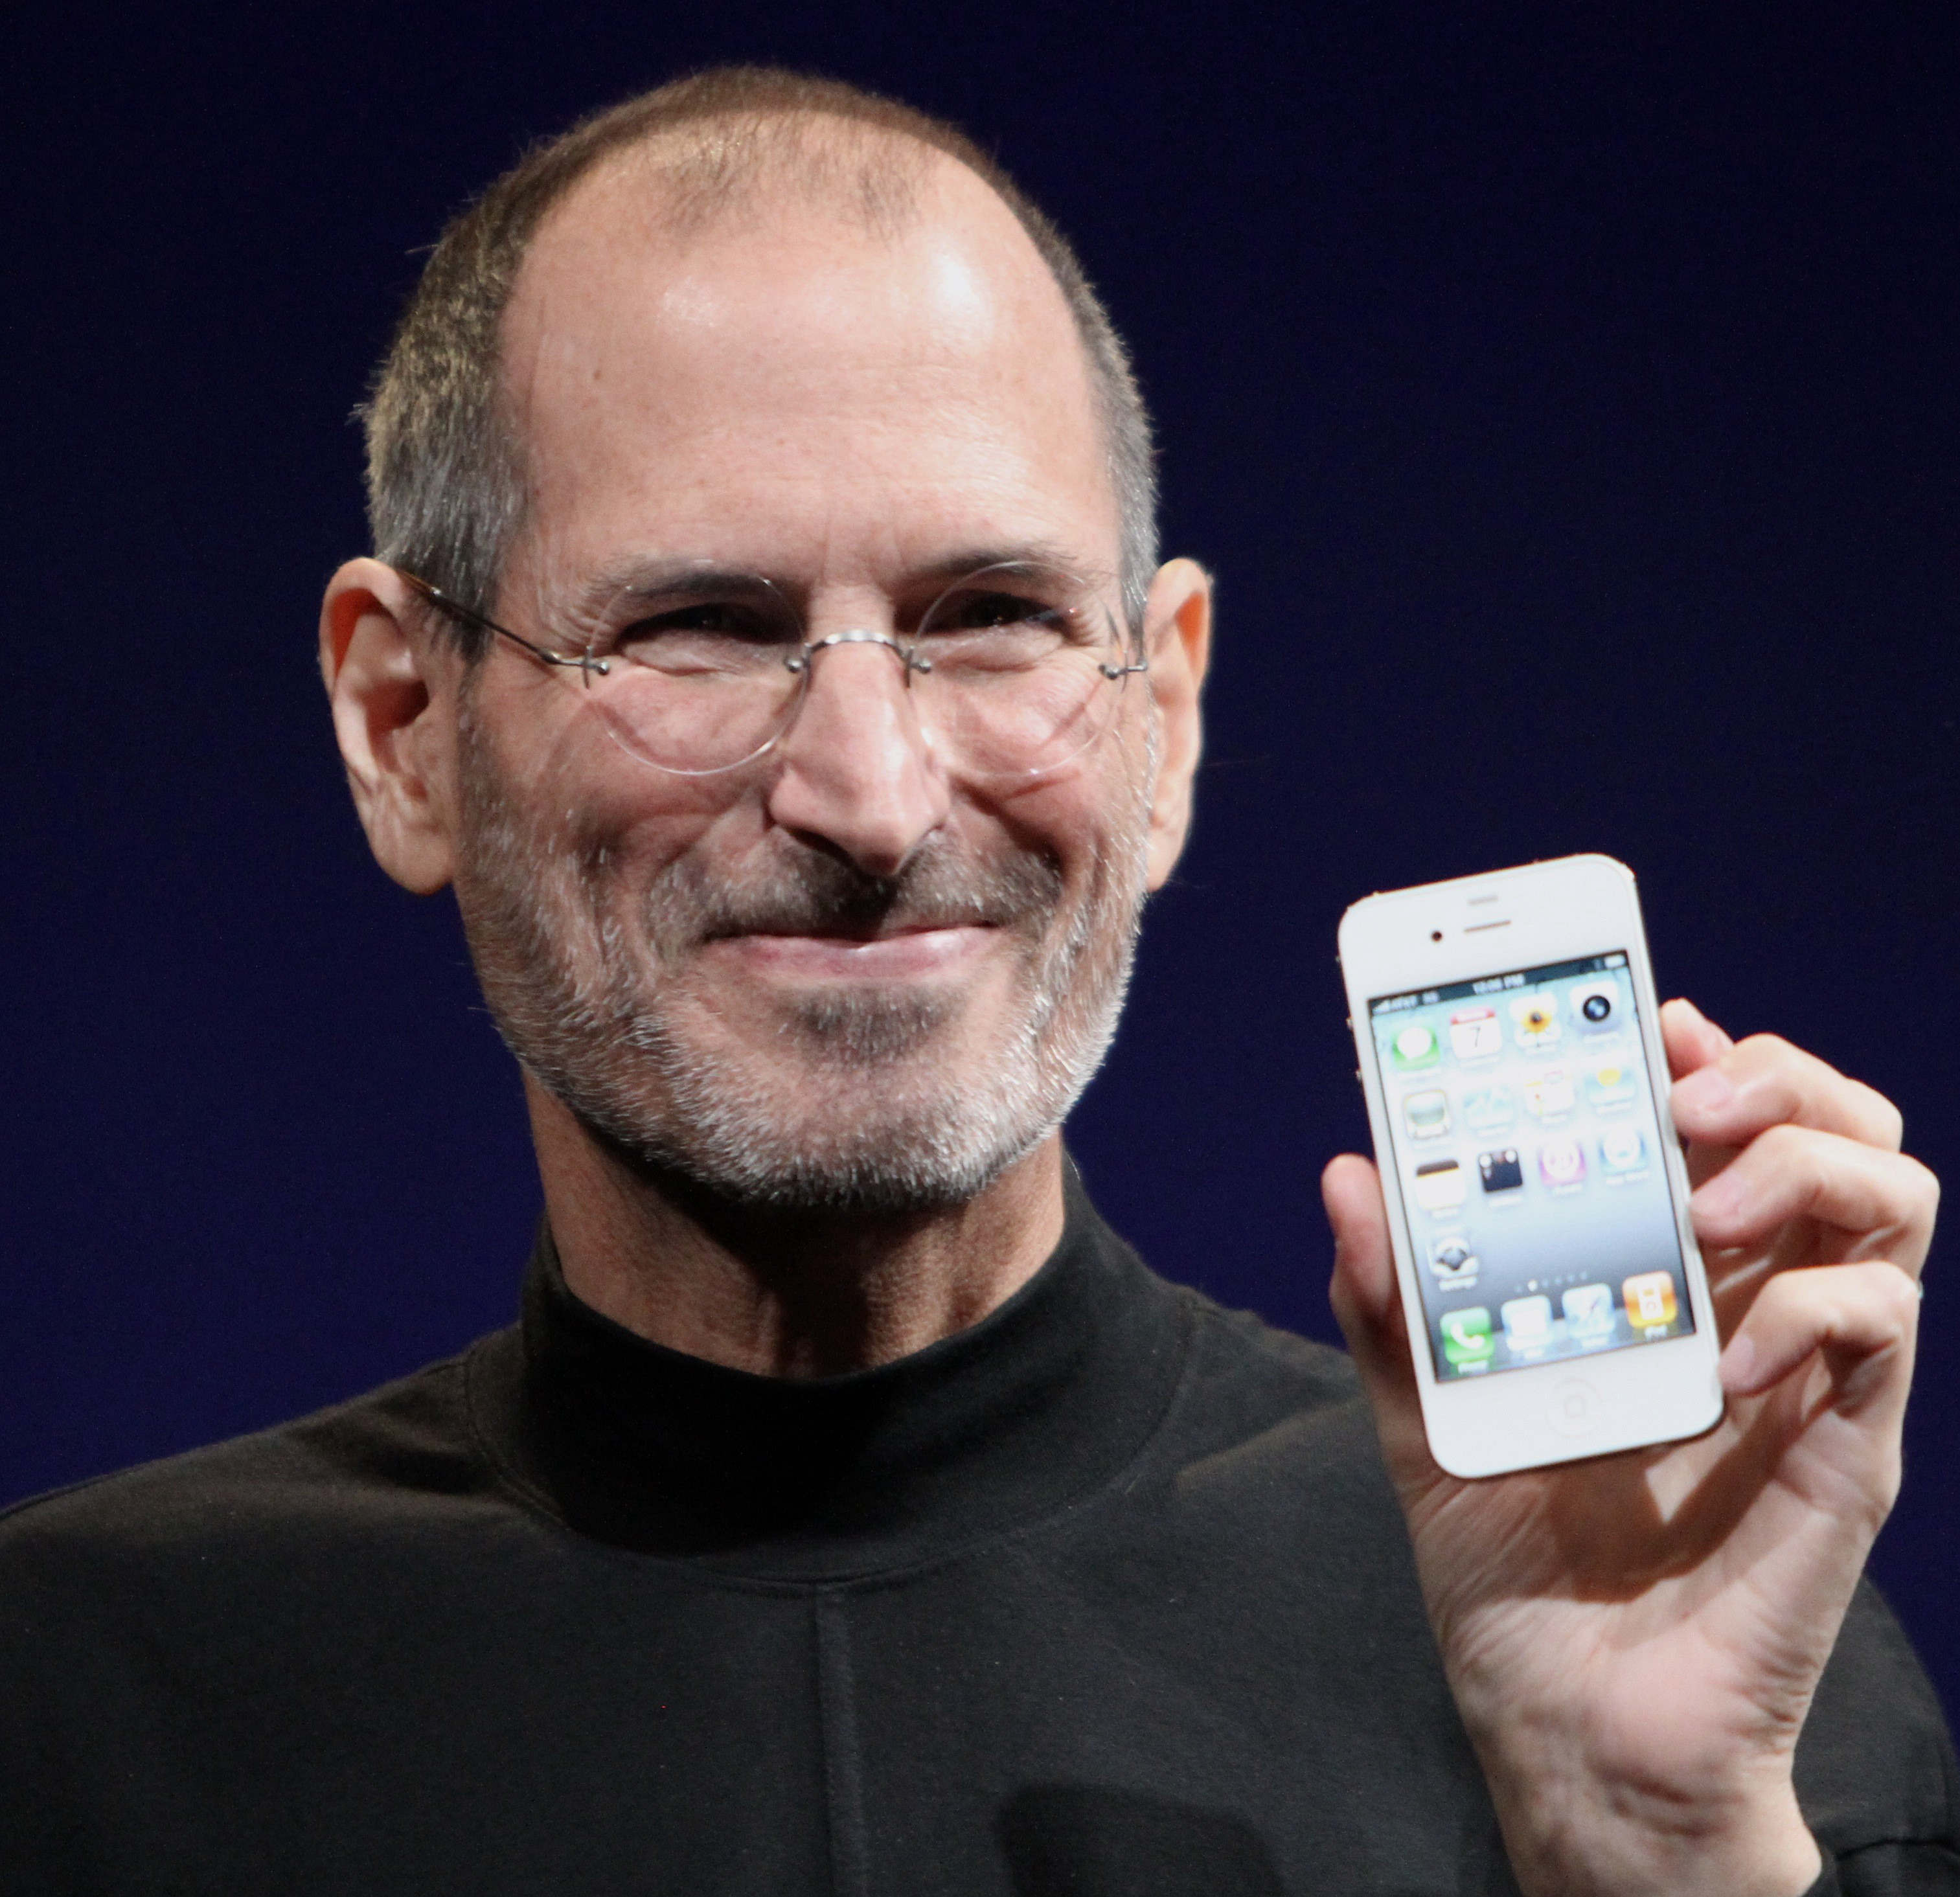 The odd and unusual Steve Jobs holding an early iPhone in his hand.